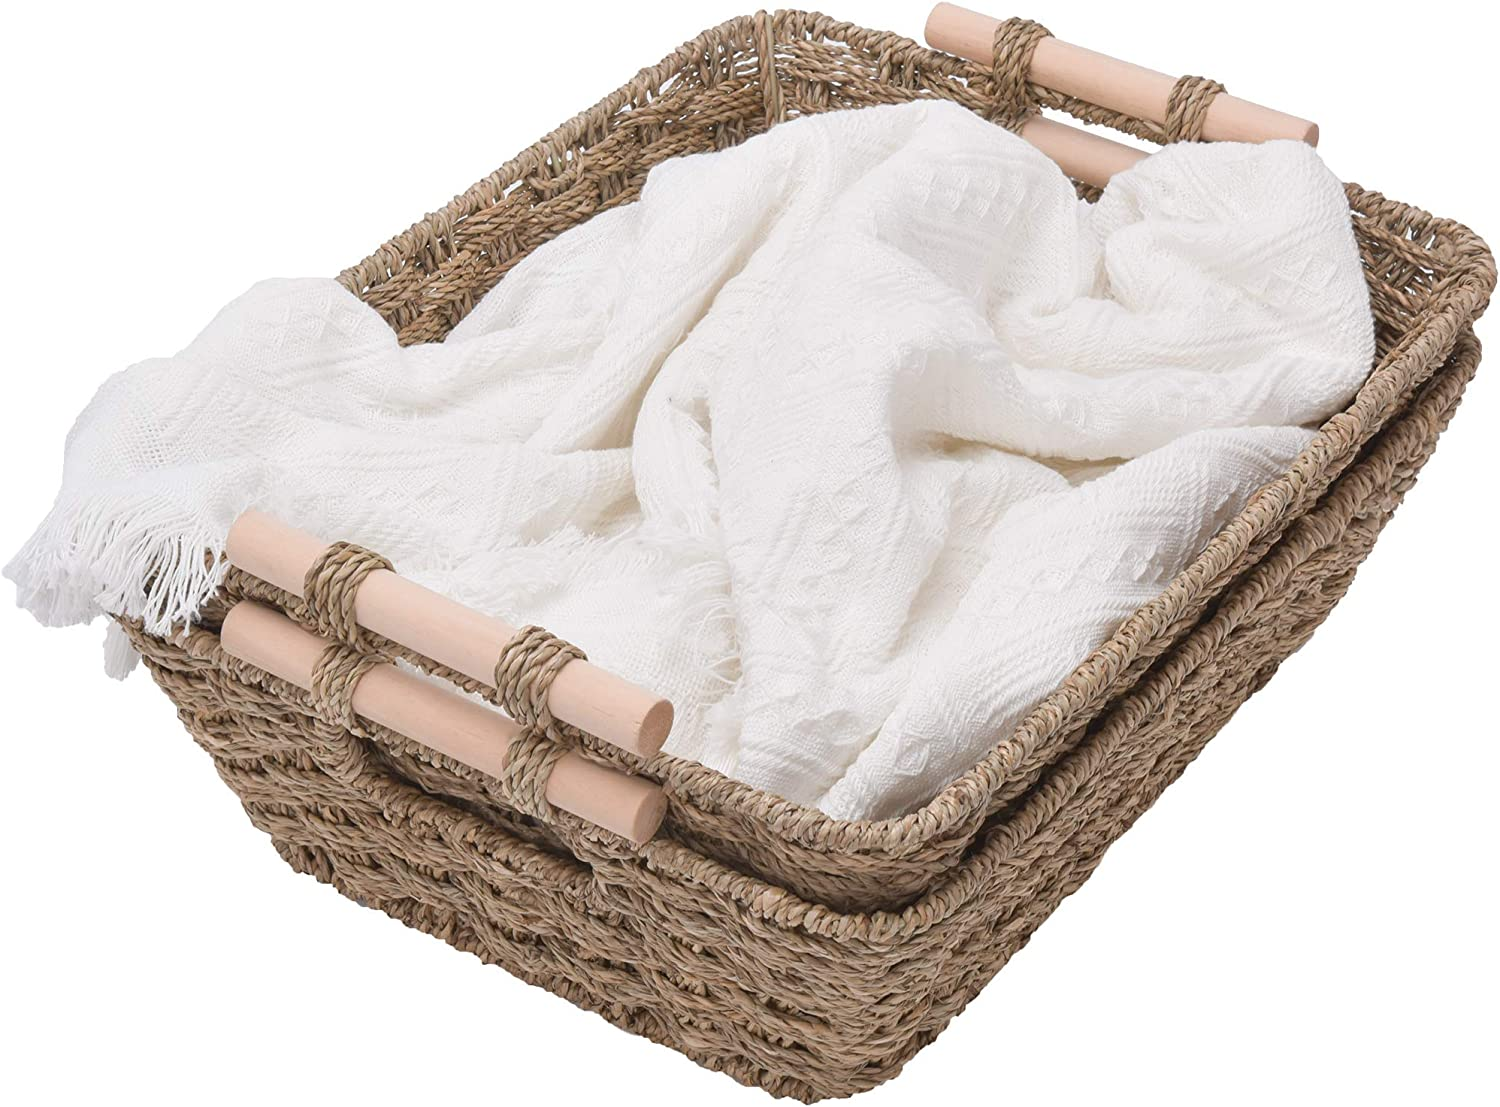 GRANNY SAYS Hand-Woven Jumbo Storage Baskets with Wooden Handles, Seagrass Wicker Baskets for Organizing, Trapezoid Decorative Baskets, 16.9